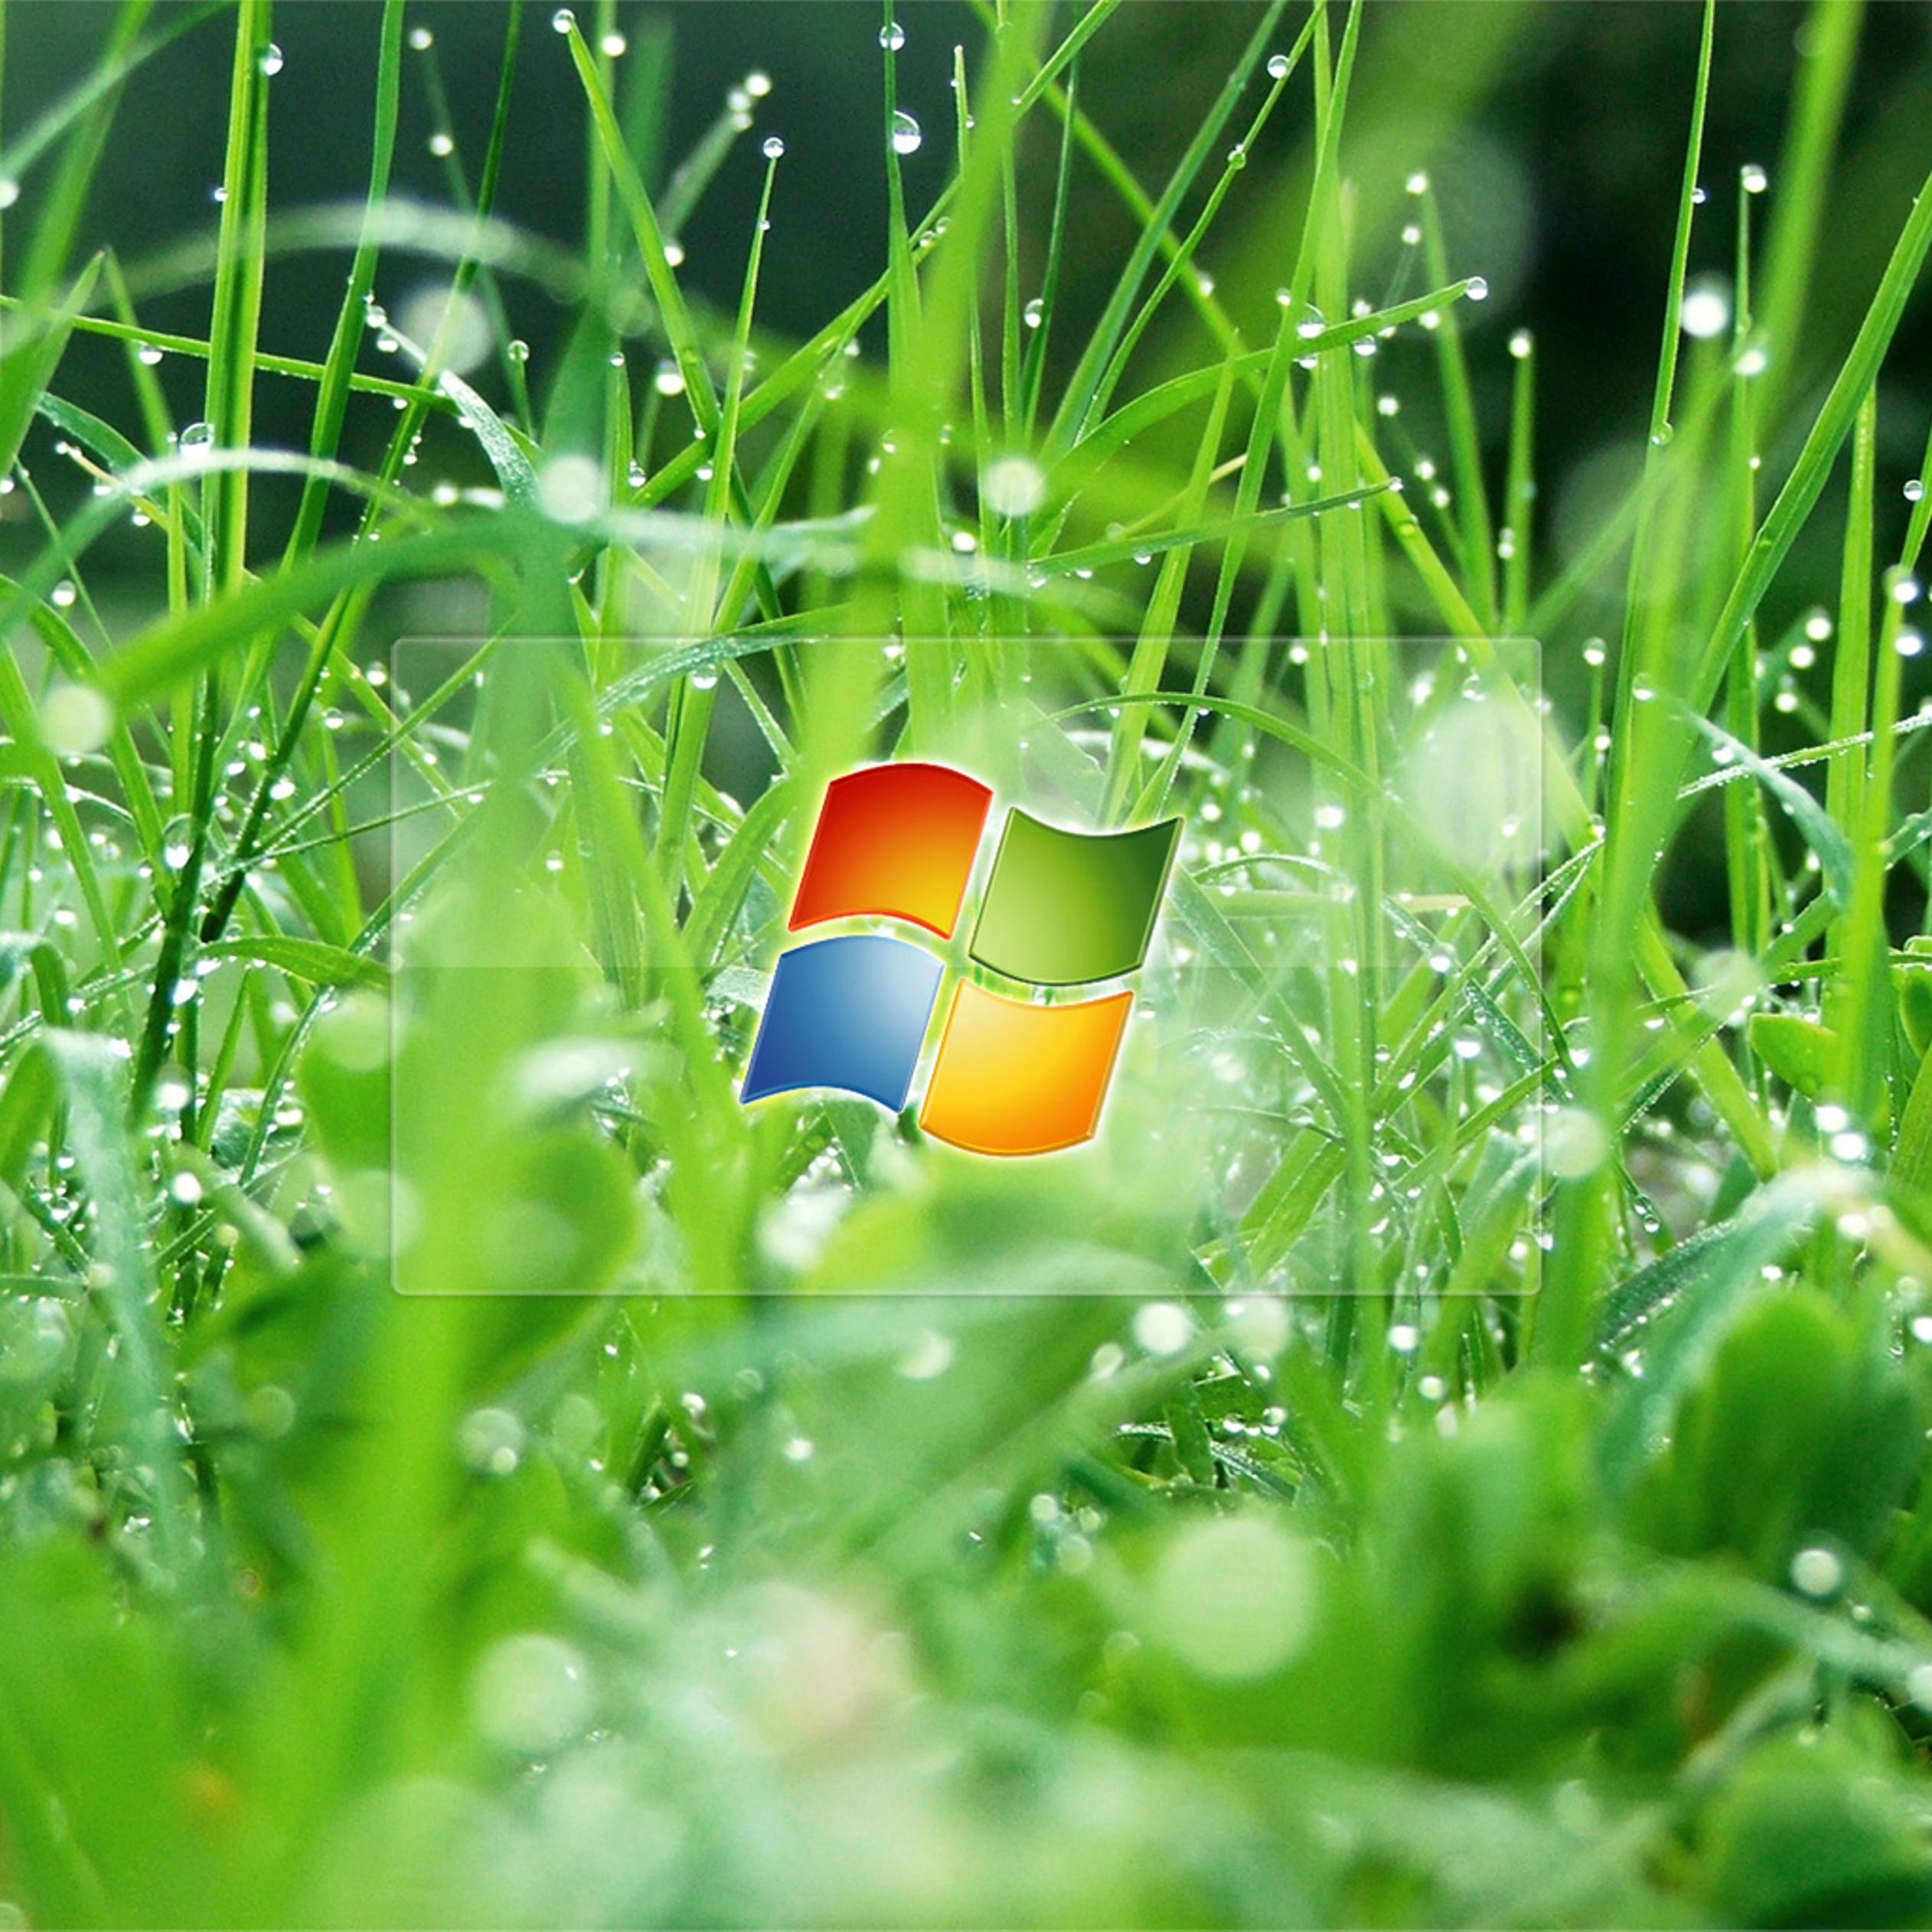 windows glass in the grass with dew drops wallpaper